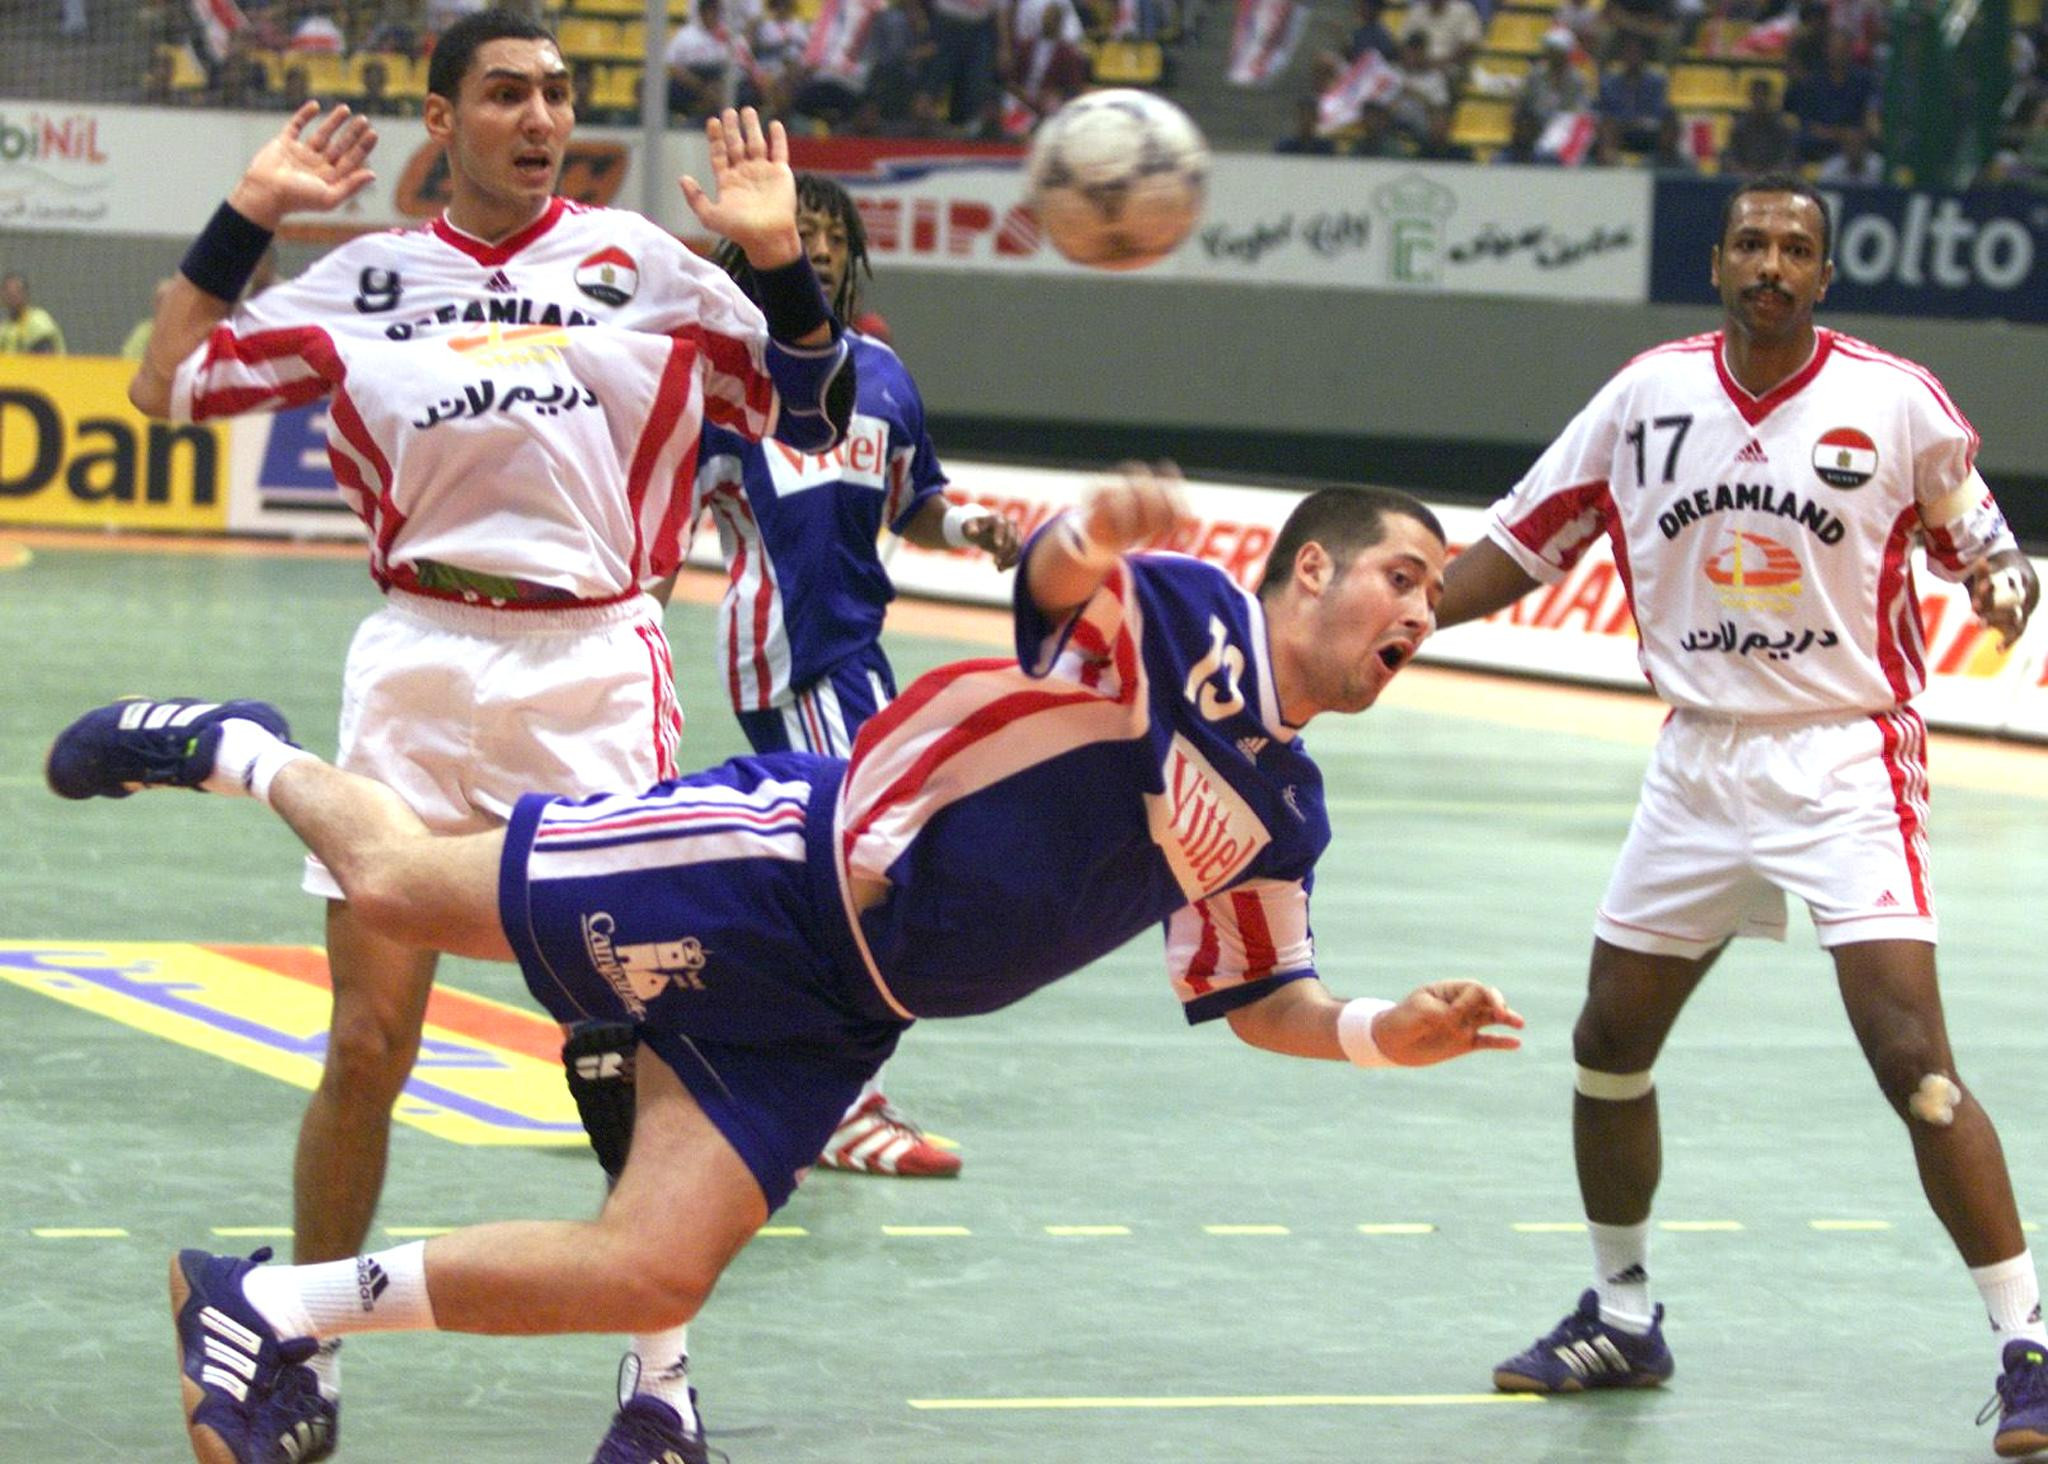 Egypt is set to host the Men's Handball World Championship for the second time - the first being in 1999 ©Getty Images